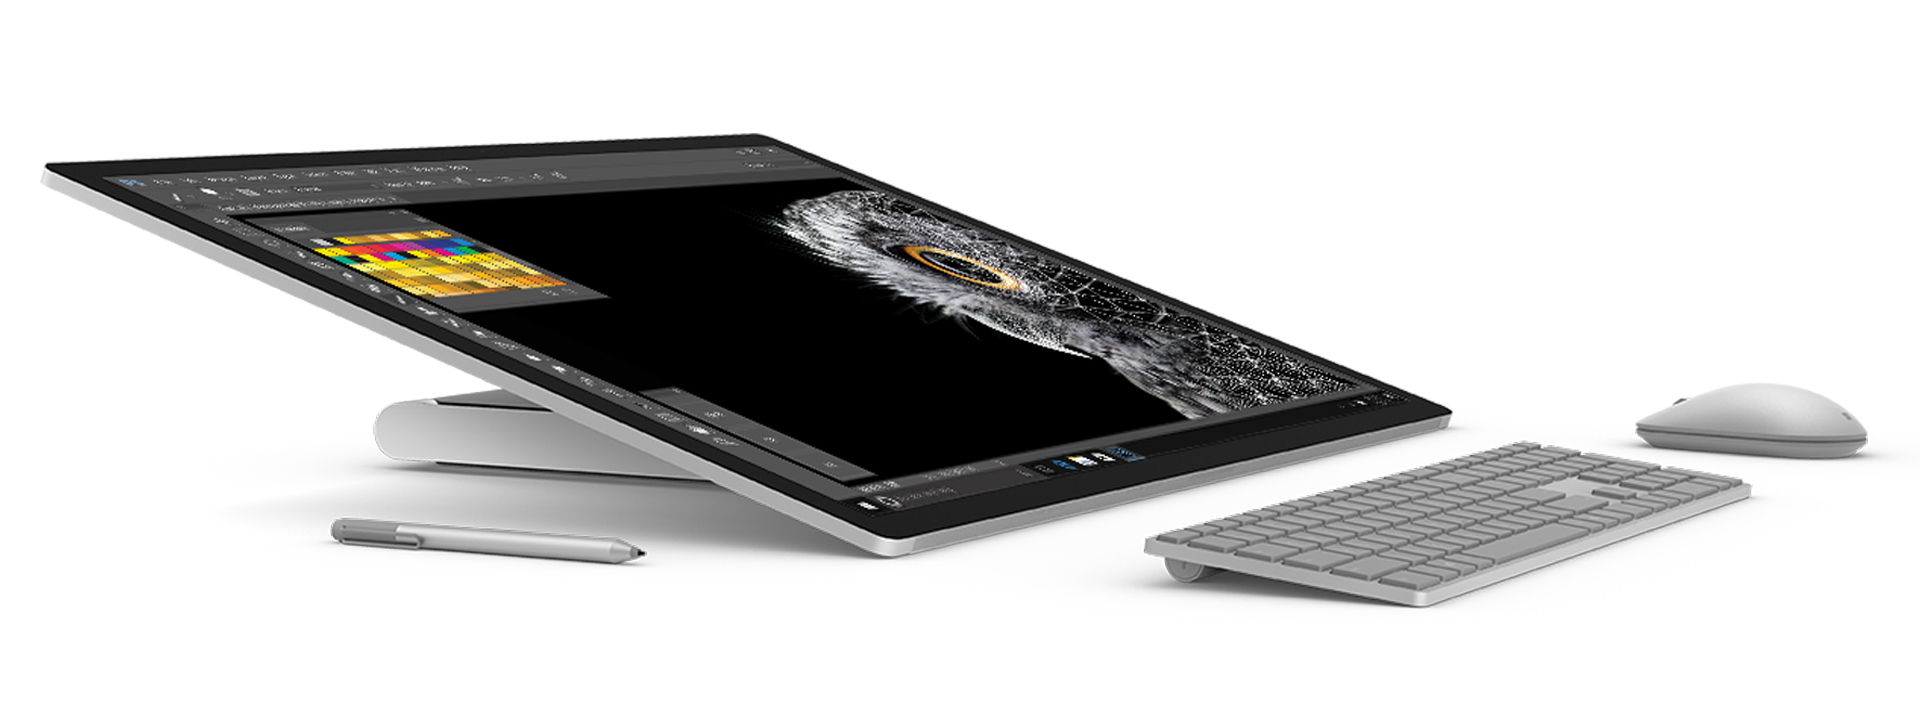 Microsoft Could Be On Track To Selling 30 000 Surface